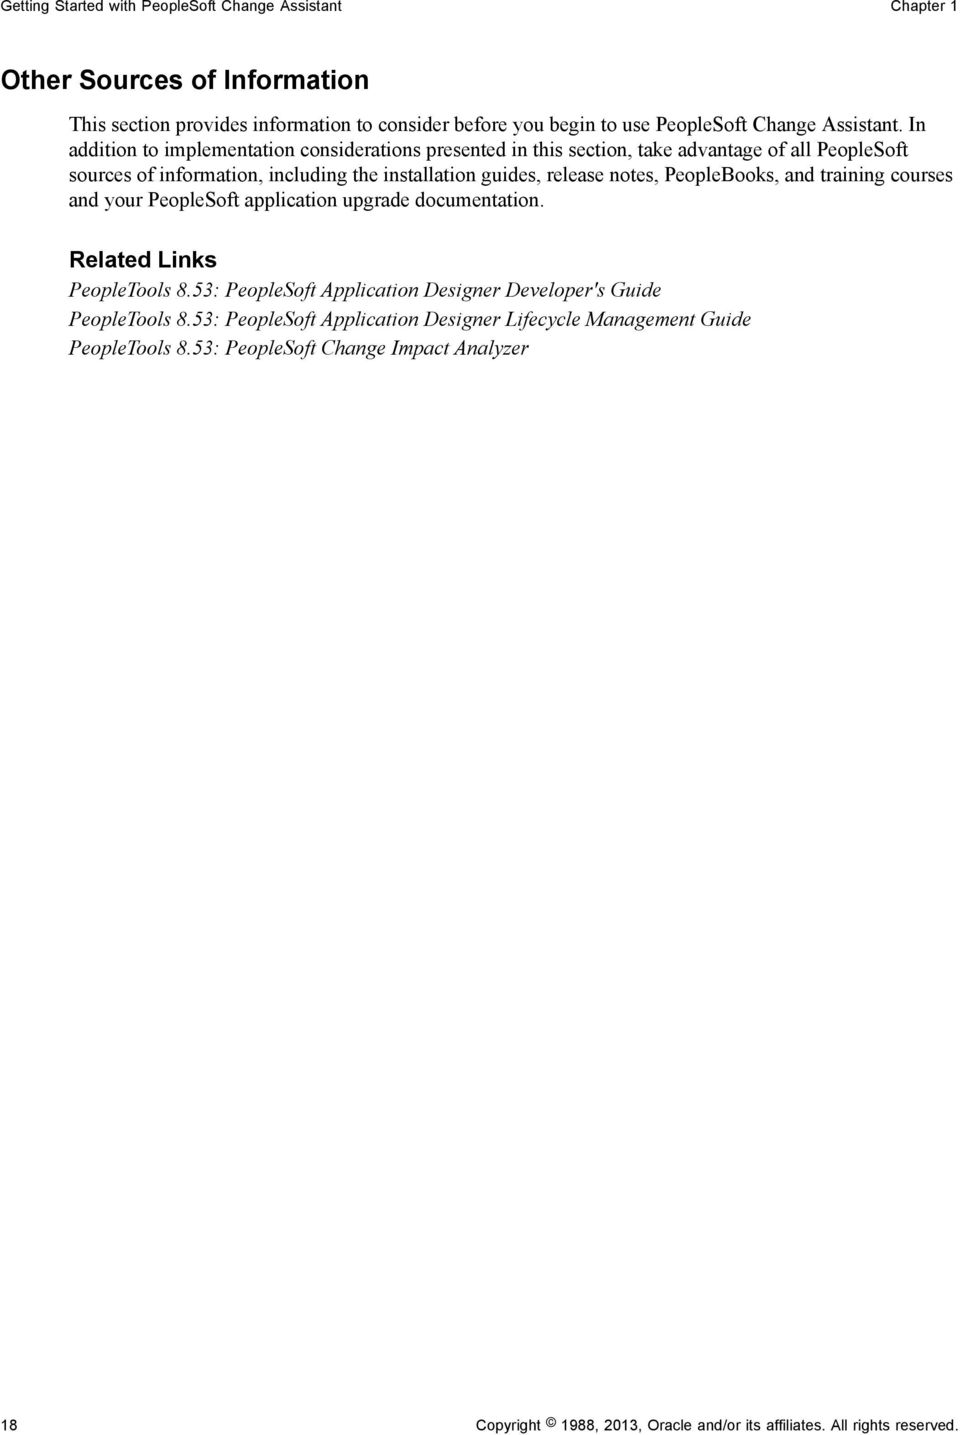 PeopleBooks, and training courses and your PeopleSoft application upgrade  documentation. Related Links PeopleTools 8.53